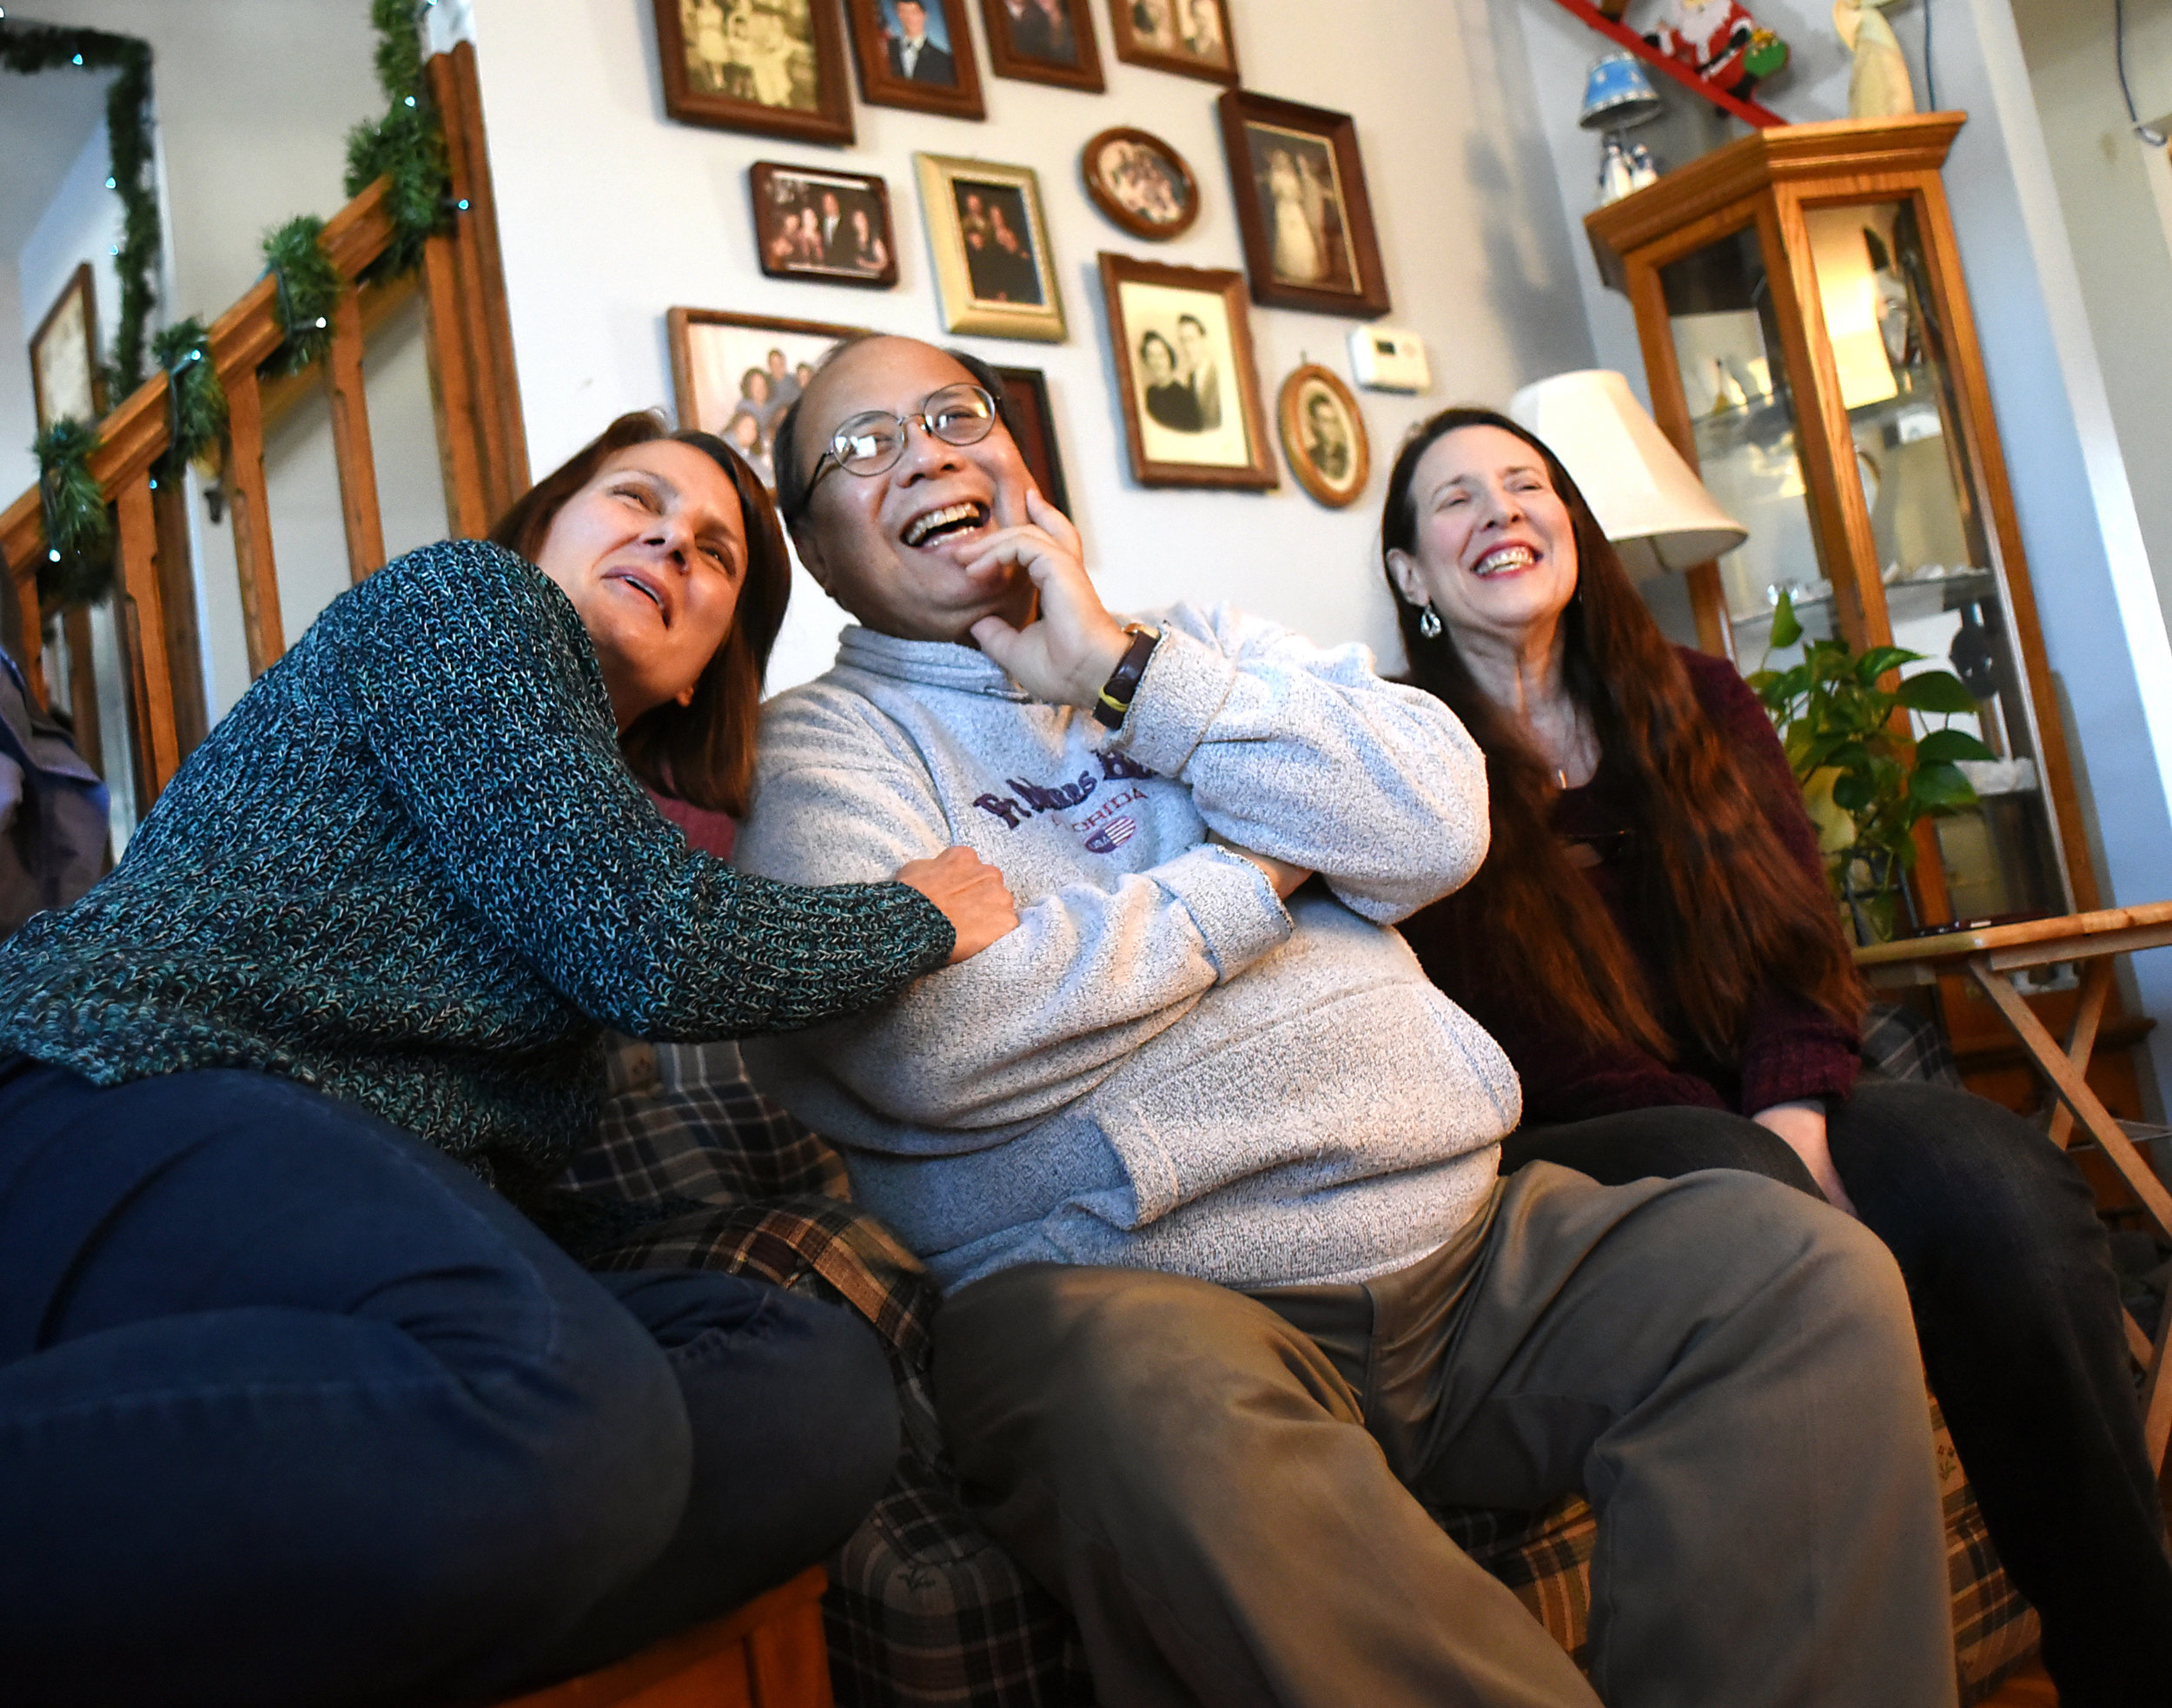 Christie Huber, Manny Bautista and his fiance, Laurie Athey, talk about their story in Bautista and Athey's home on Jan. 4, 2016.When Bautista, who has stage four kidney disease, posted on Facebook he was in need of a kidney transplant, Huber decided she wanted to be the one to donate to him.